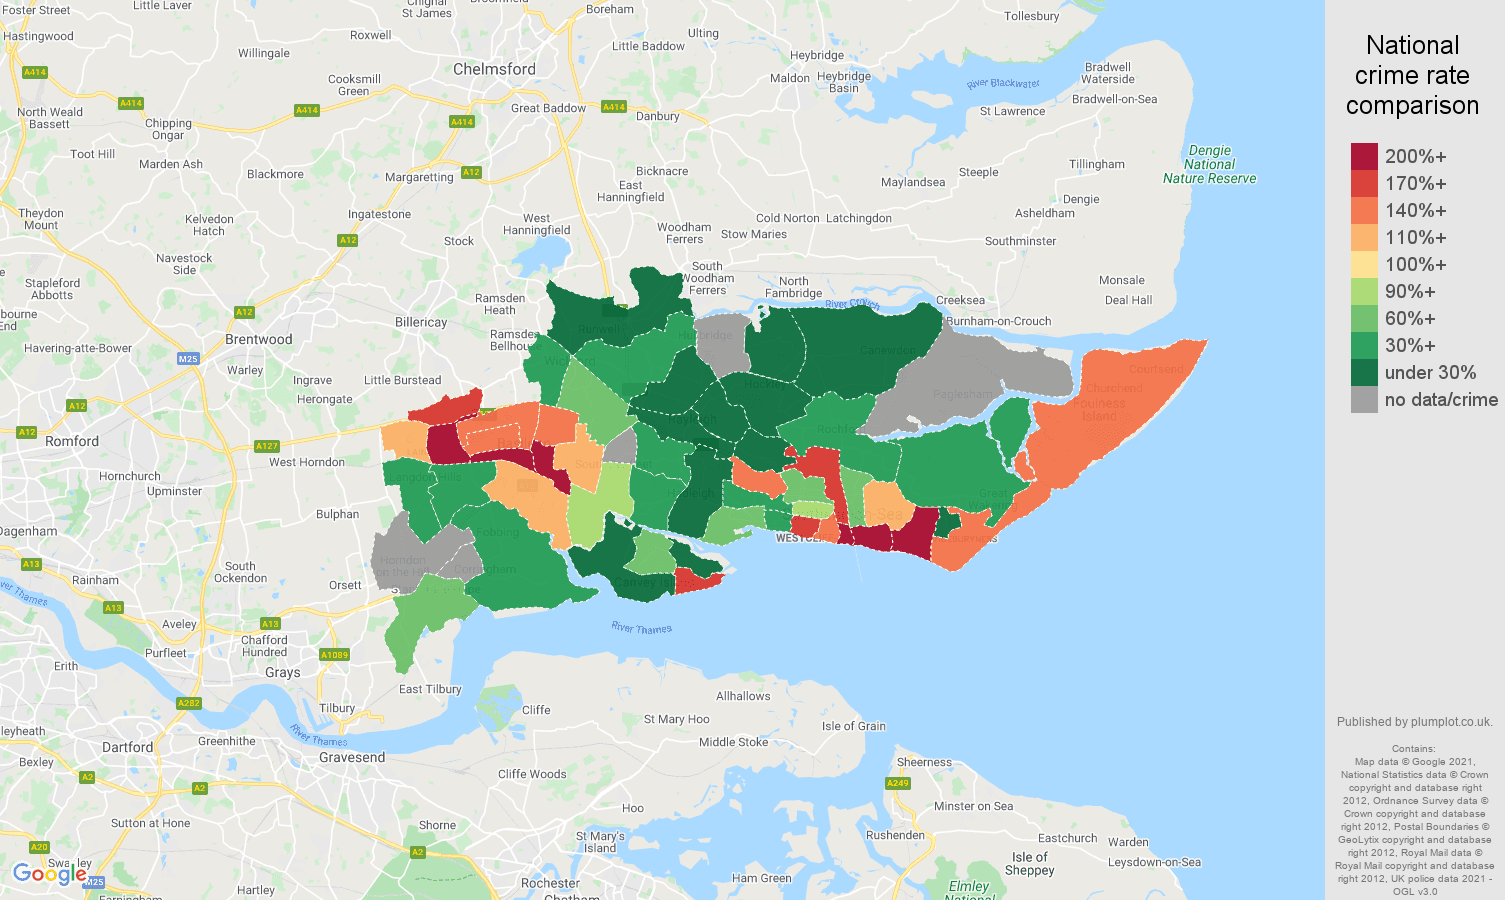 Southend on Sea robbery crime rate comparison map